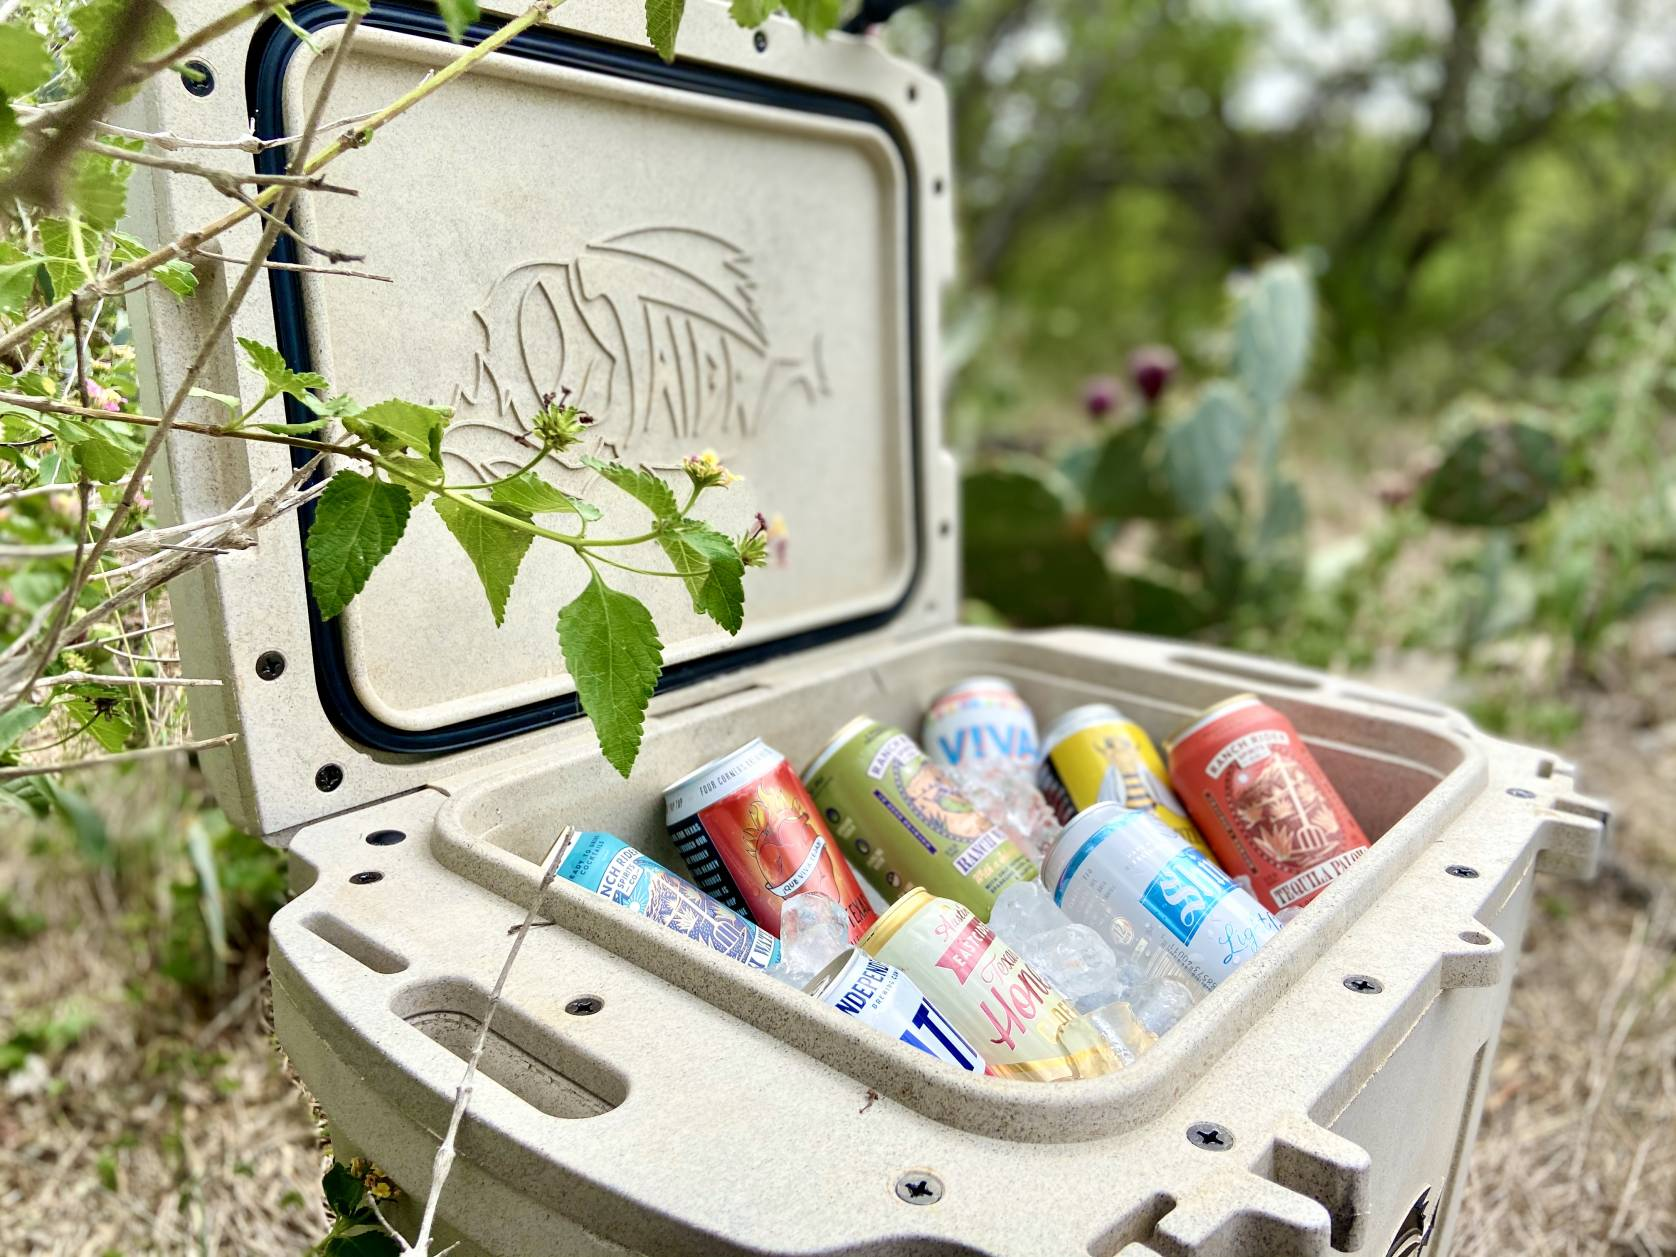 Taiga Terra cooler with drinks